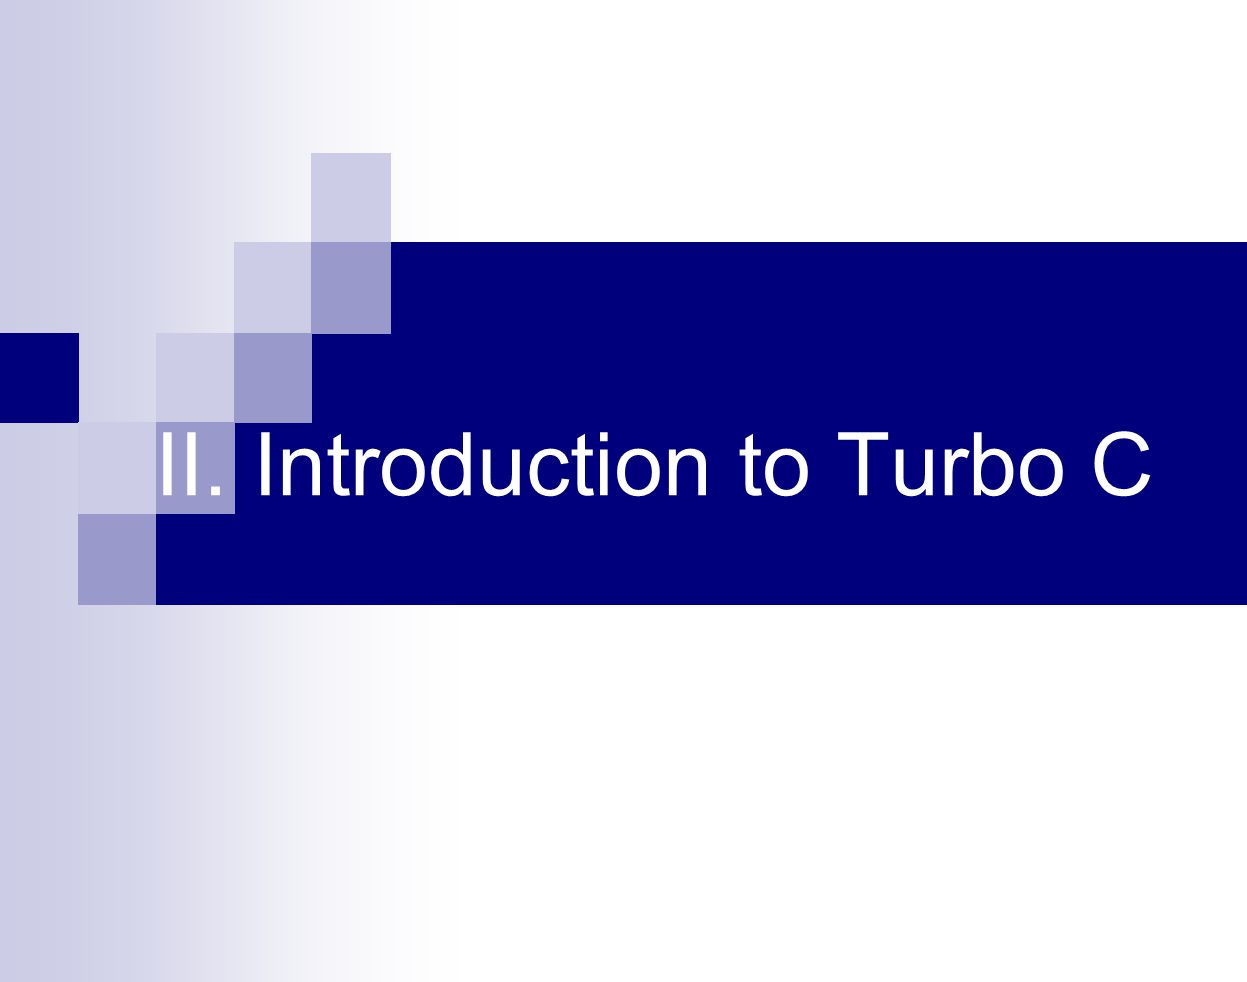 II. Introduction to Turbo C